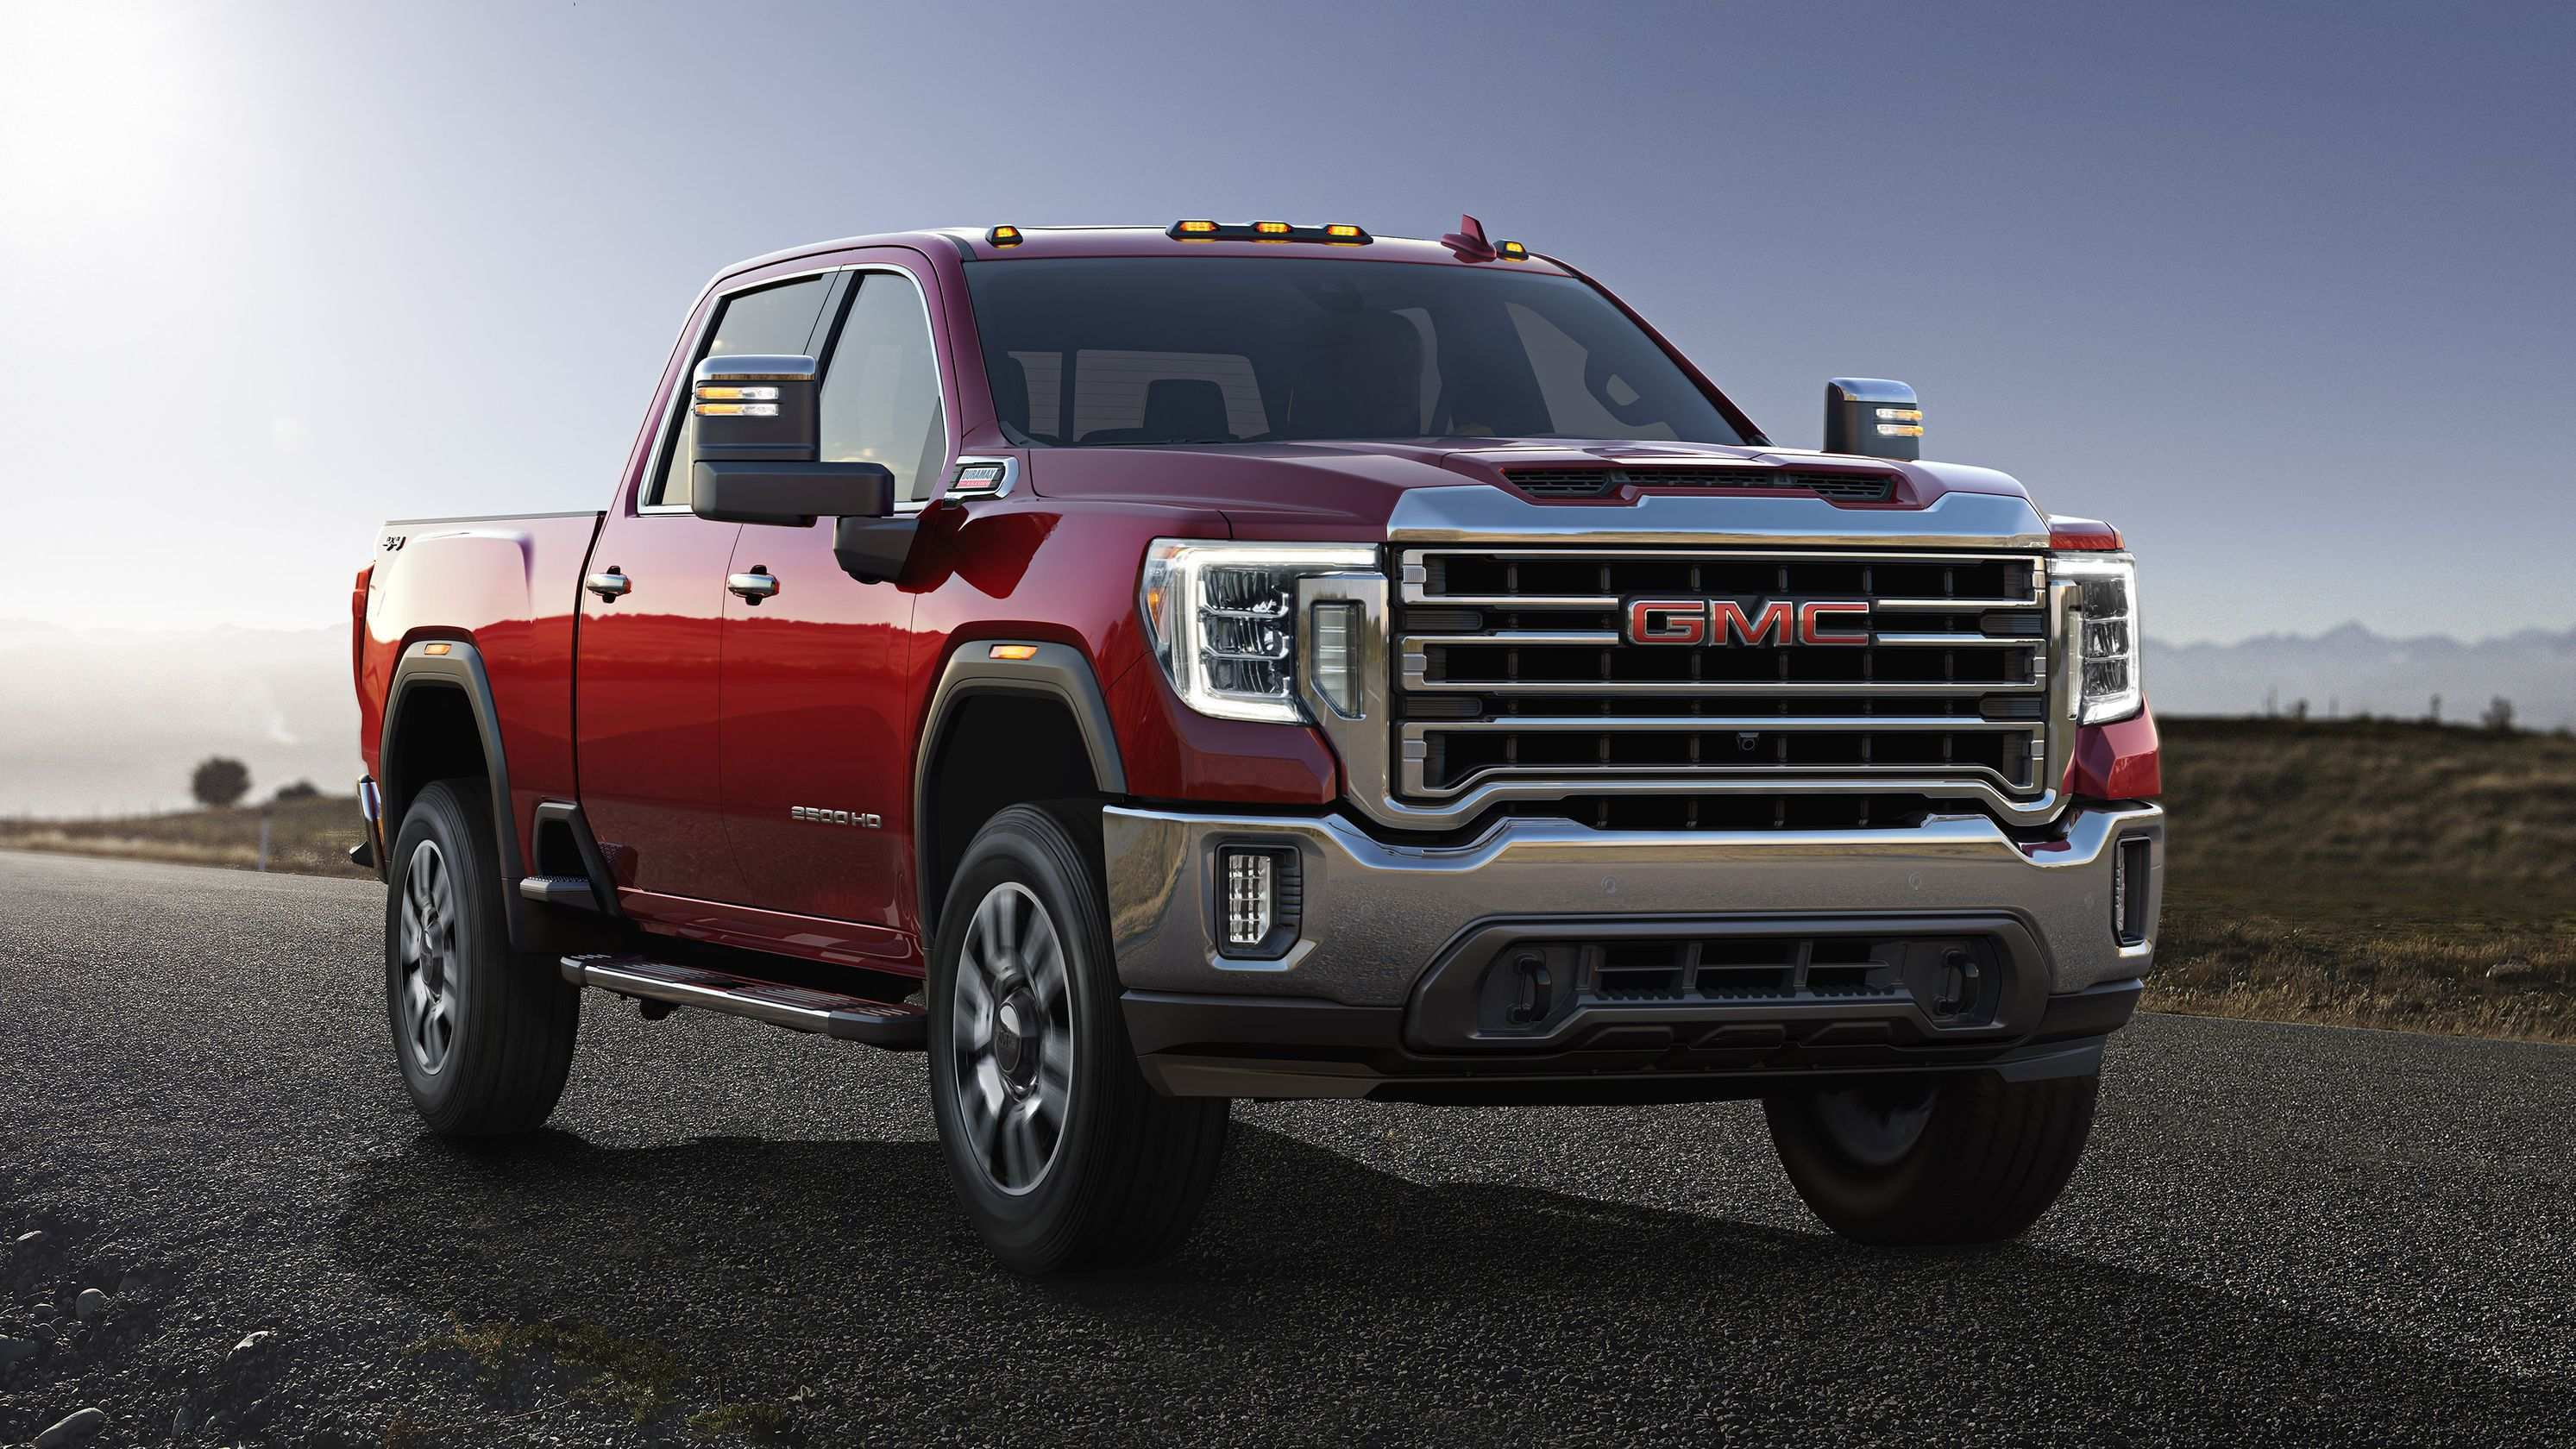 50 New 2020 GMC Sierra 2500Hd First Drive by 2020 GMC Sierra 2500Hd